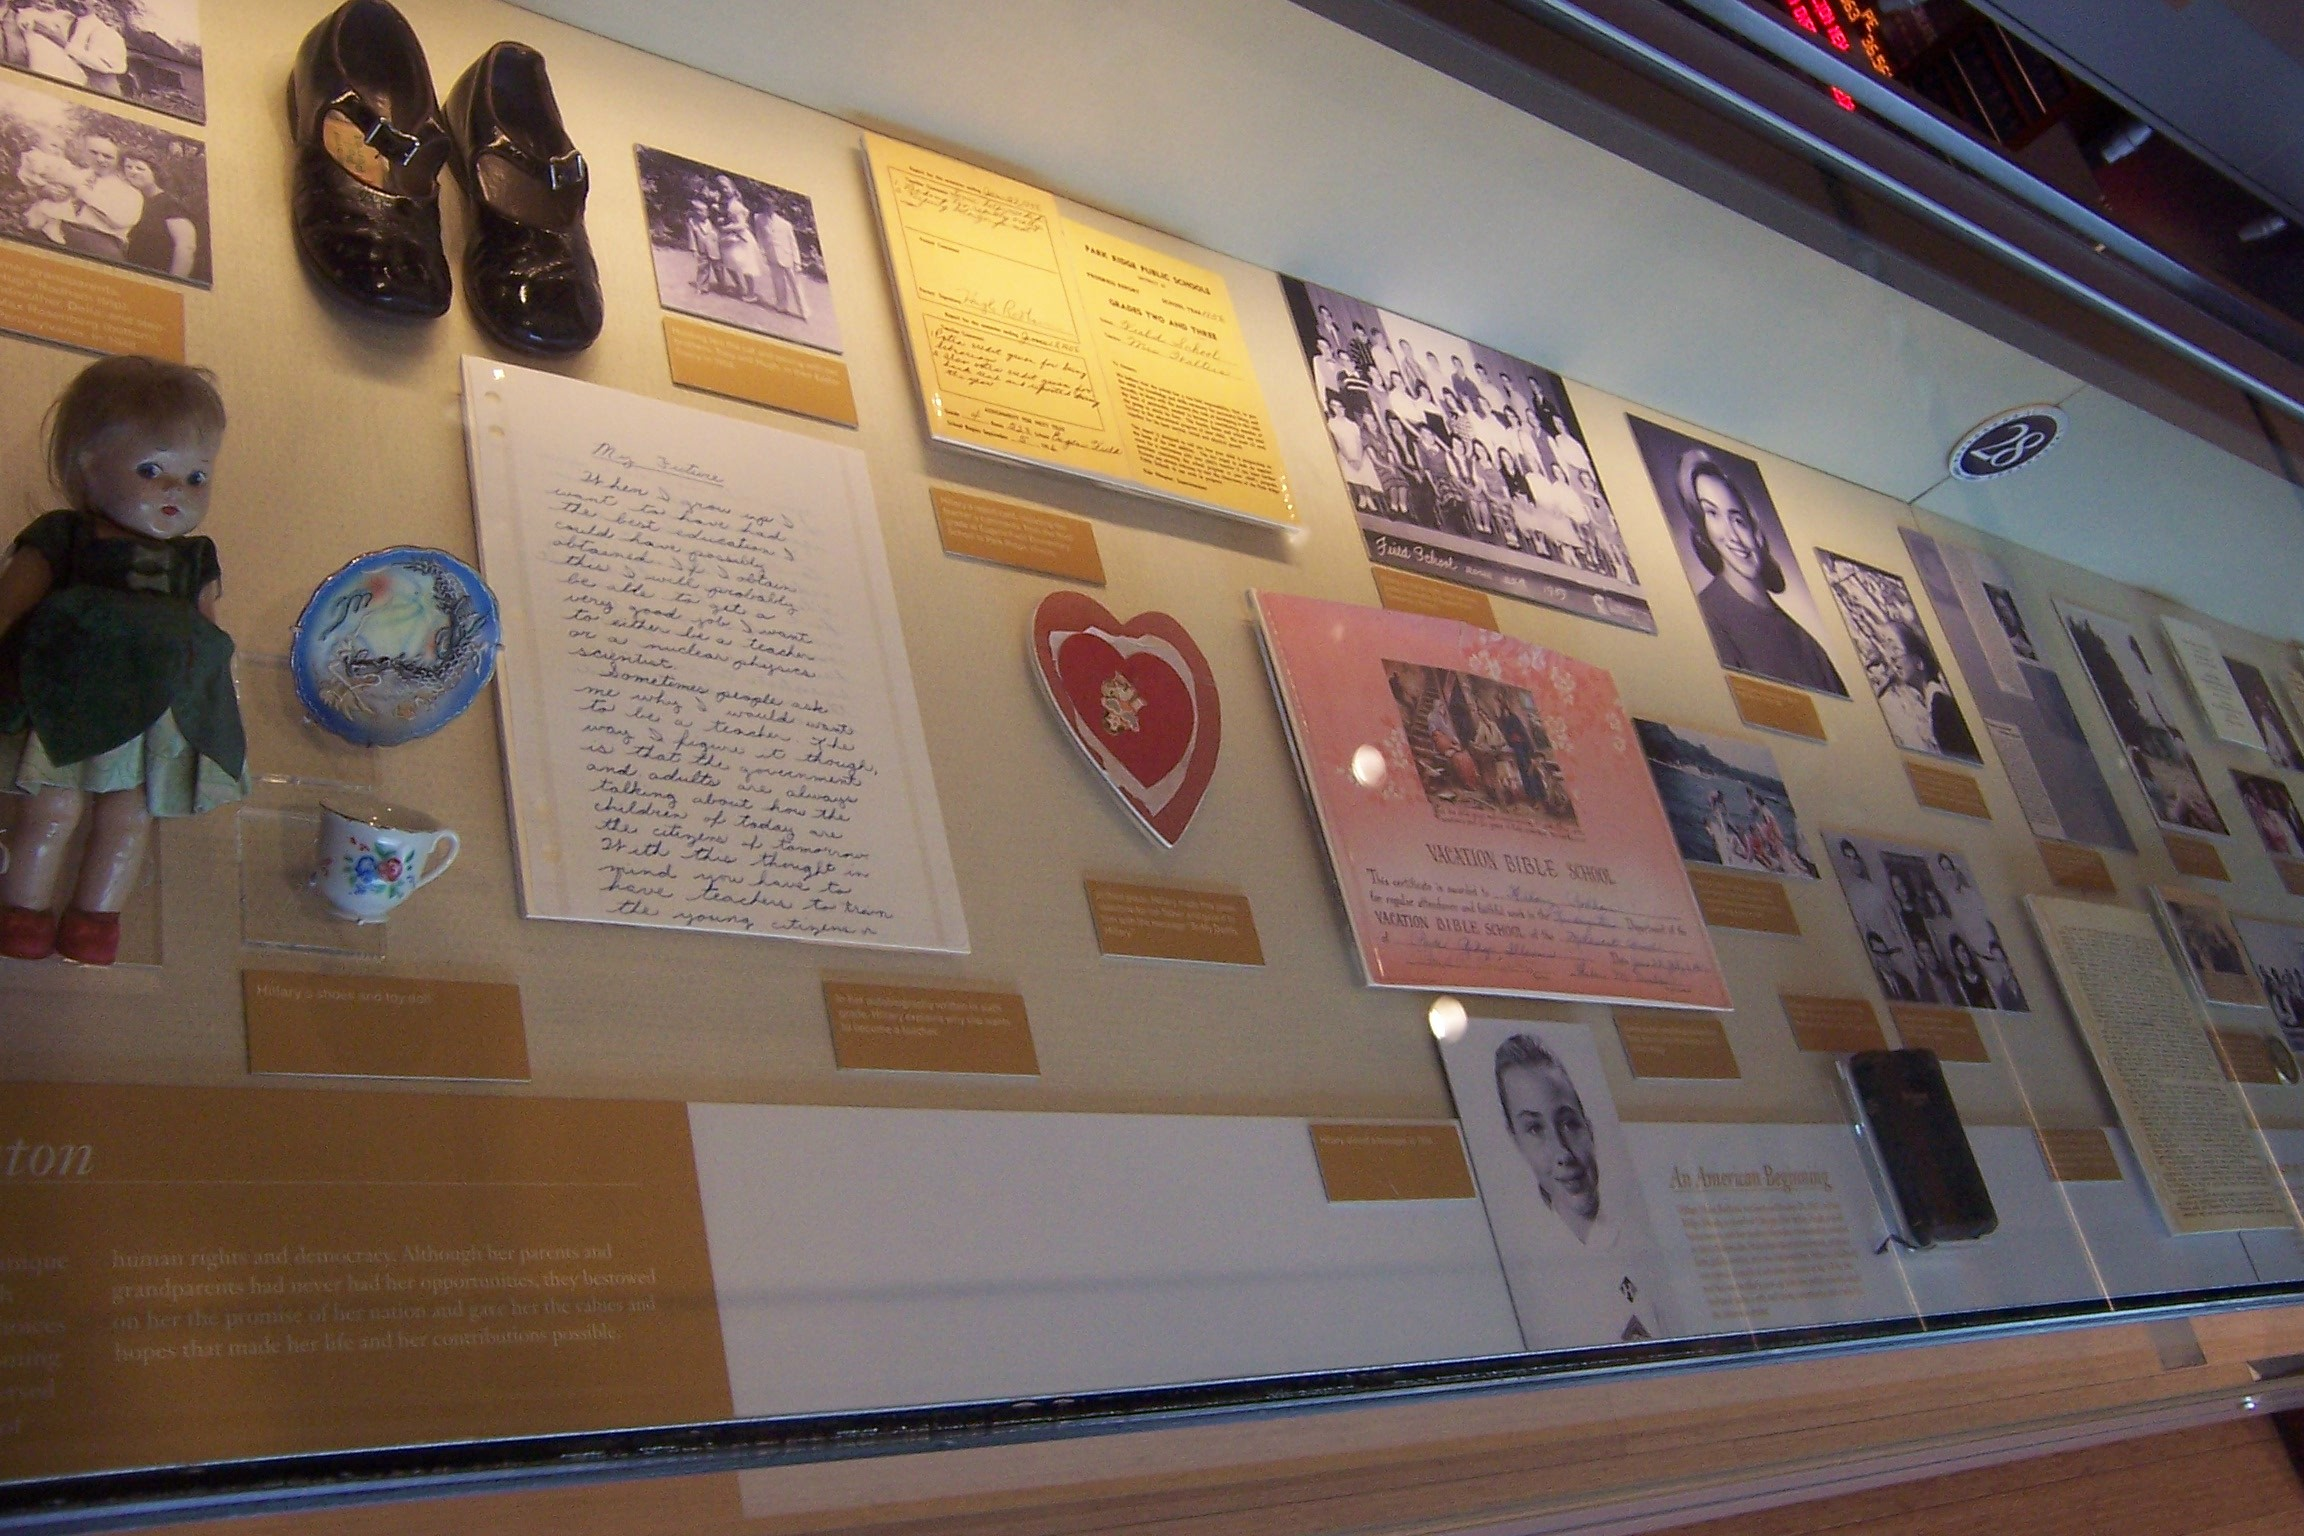 Mementos of Hillary Rodham's early life are shown at the William J. Clinton Presidential Center.